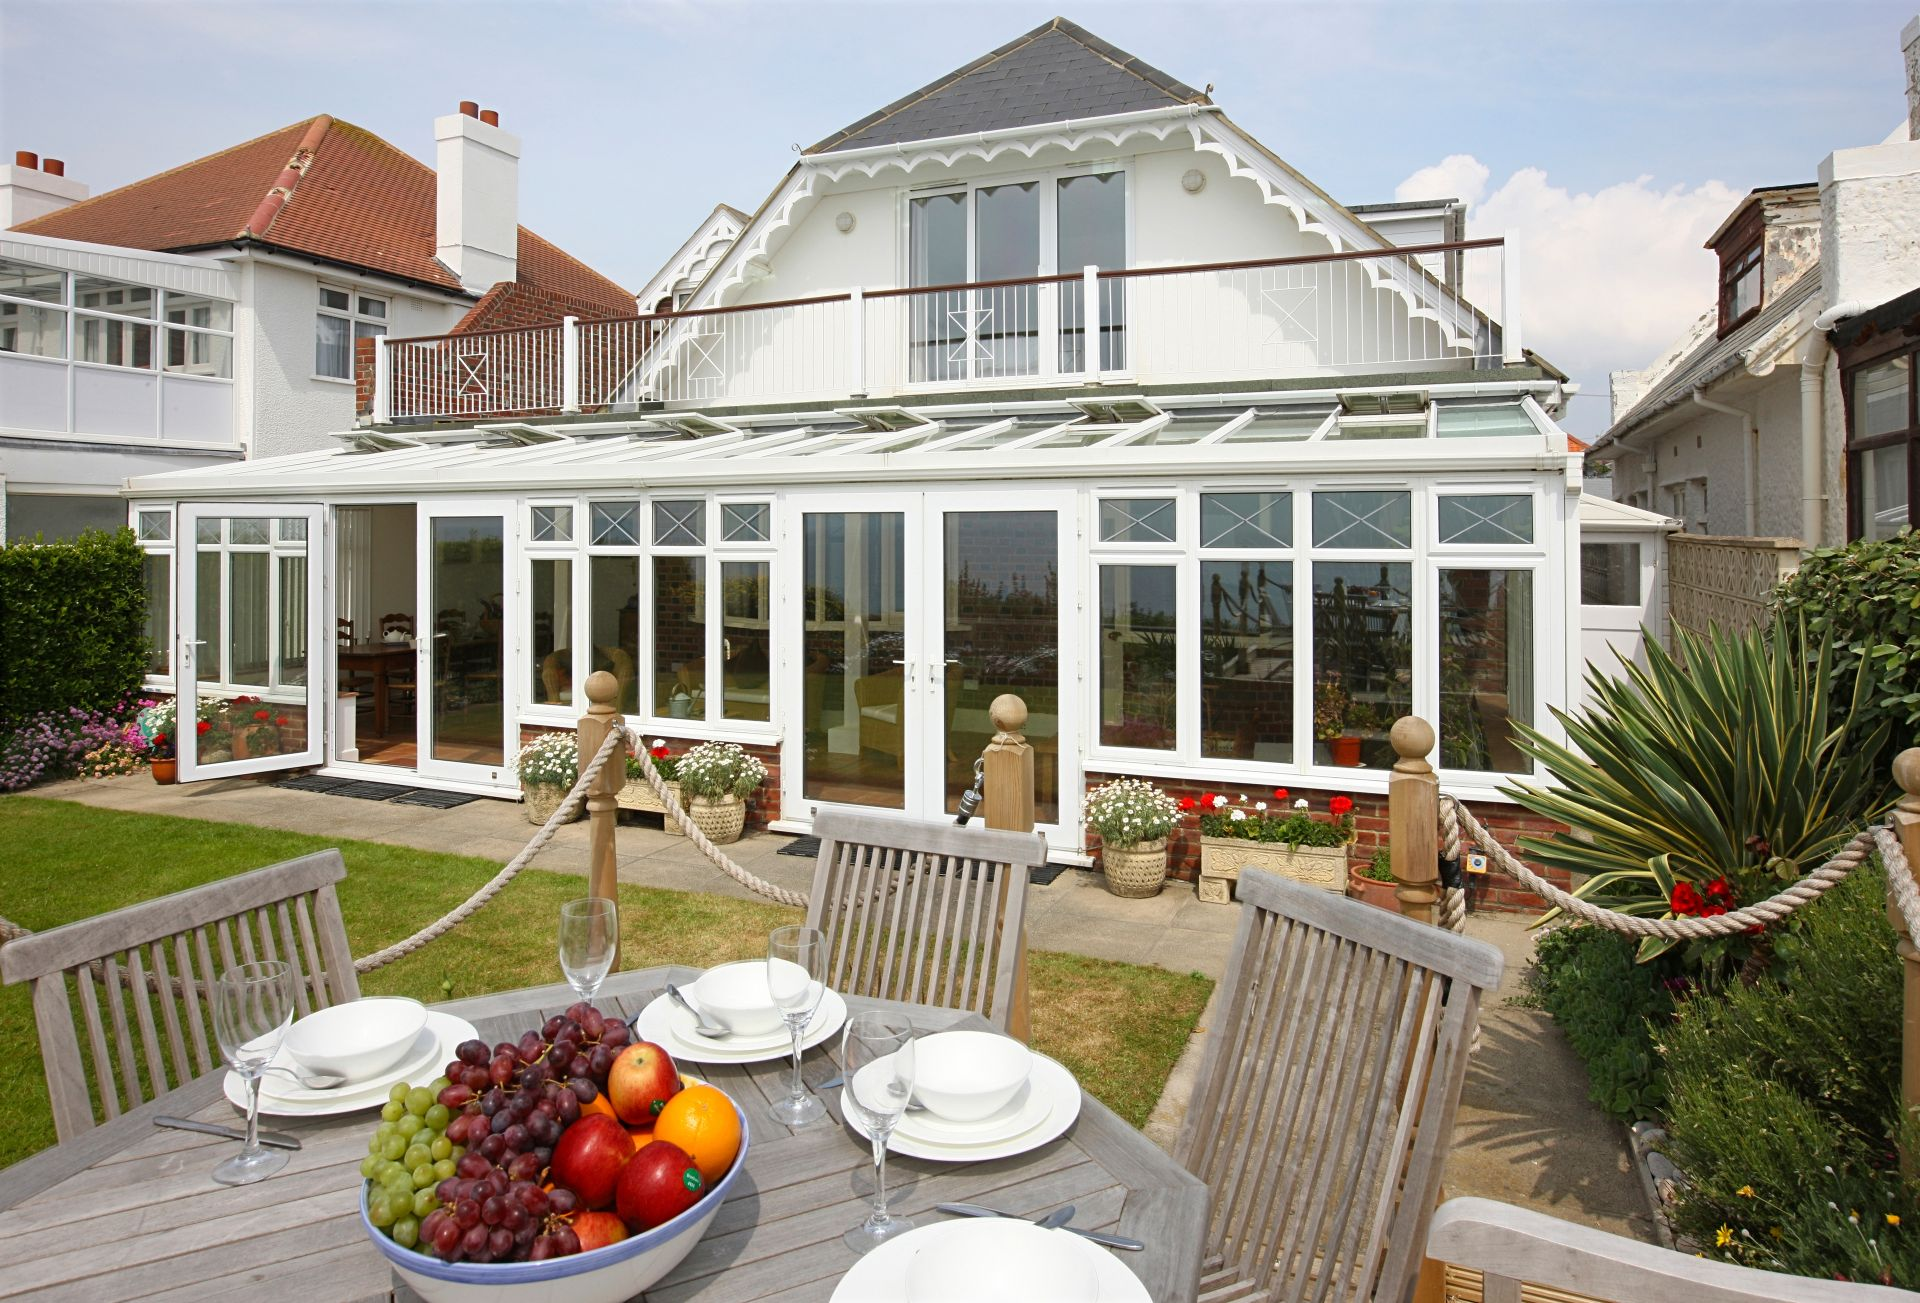 Beach View is located in Bournemouth and surrounding villages